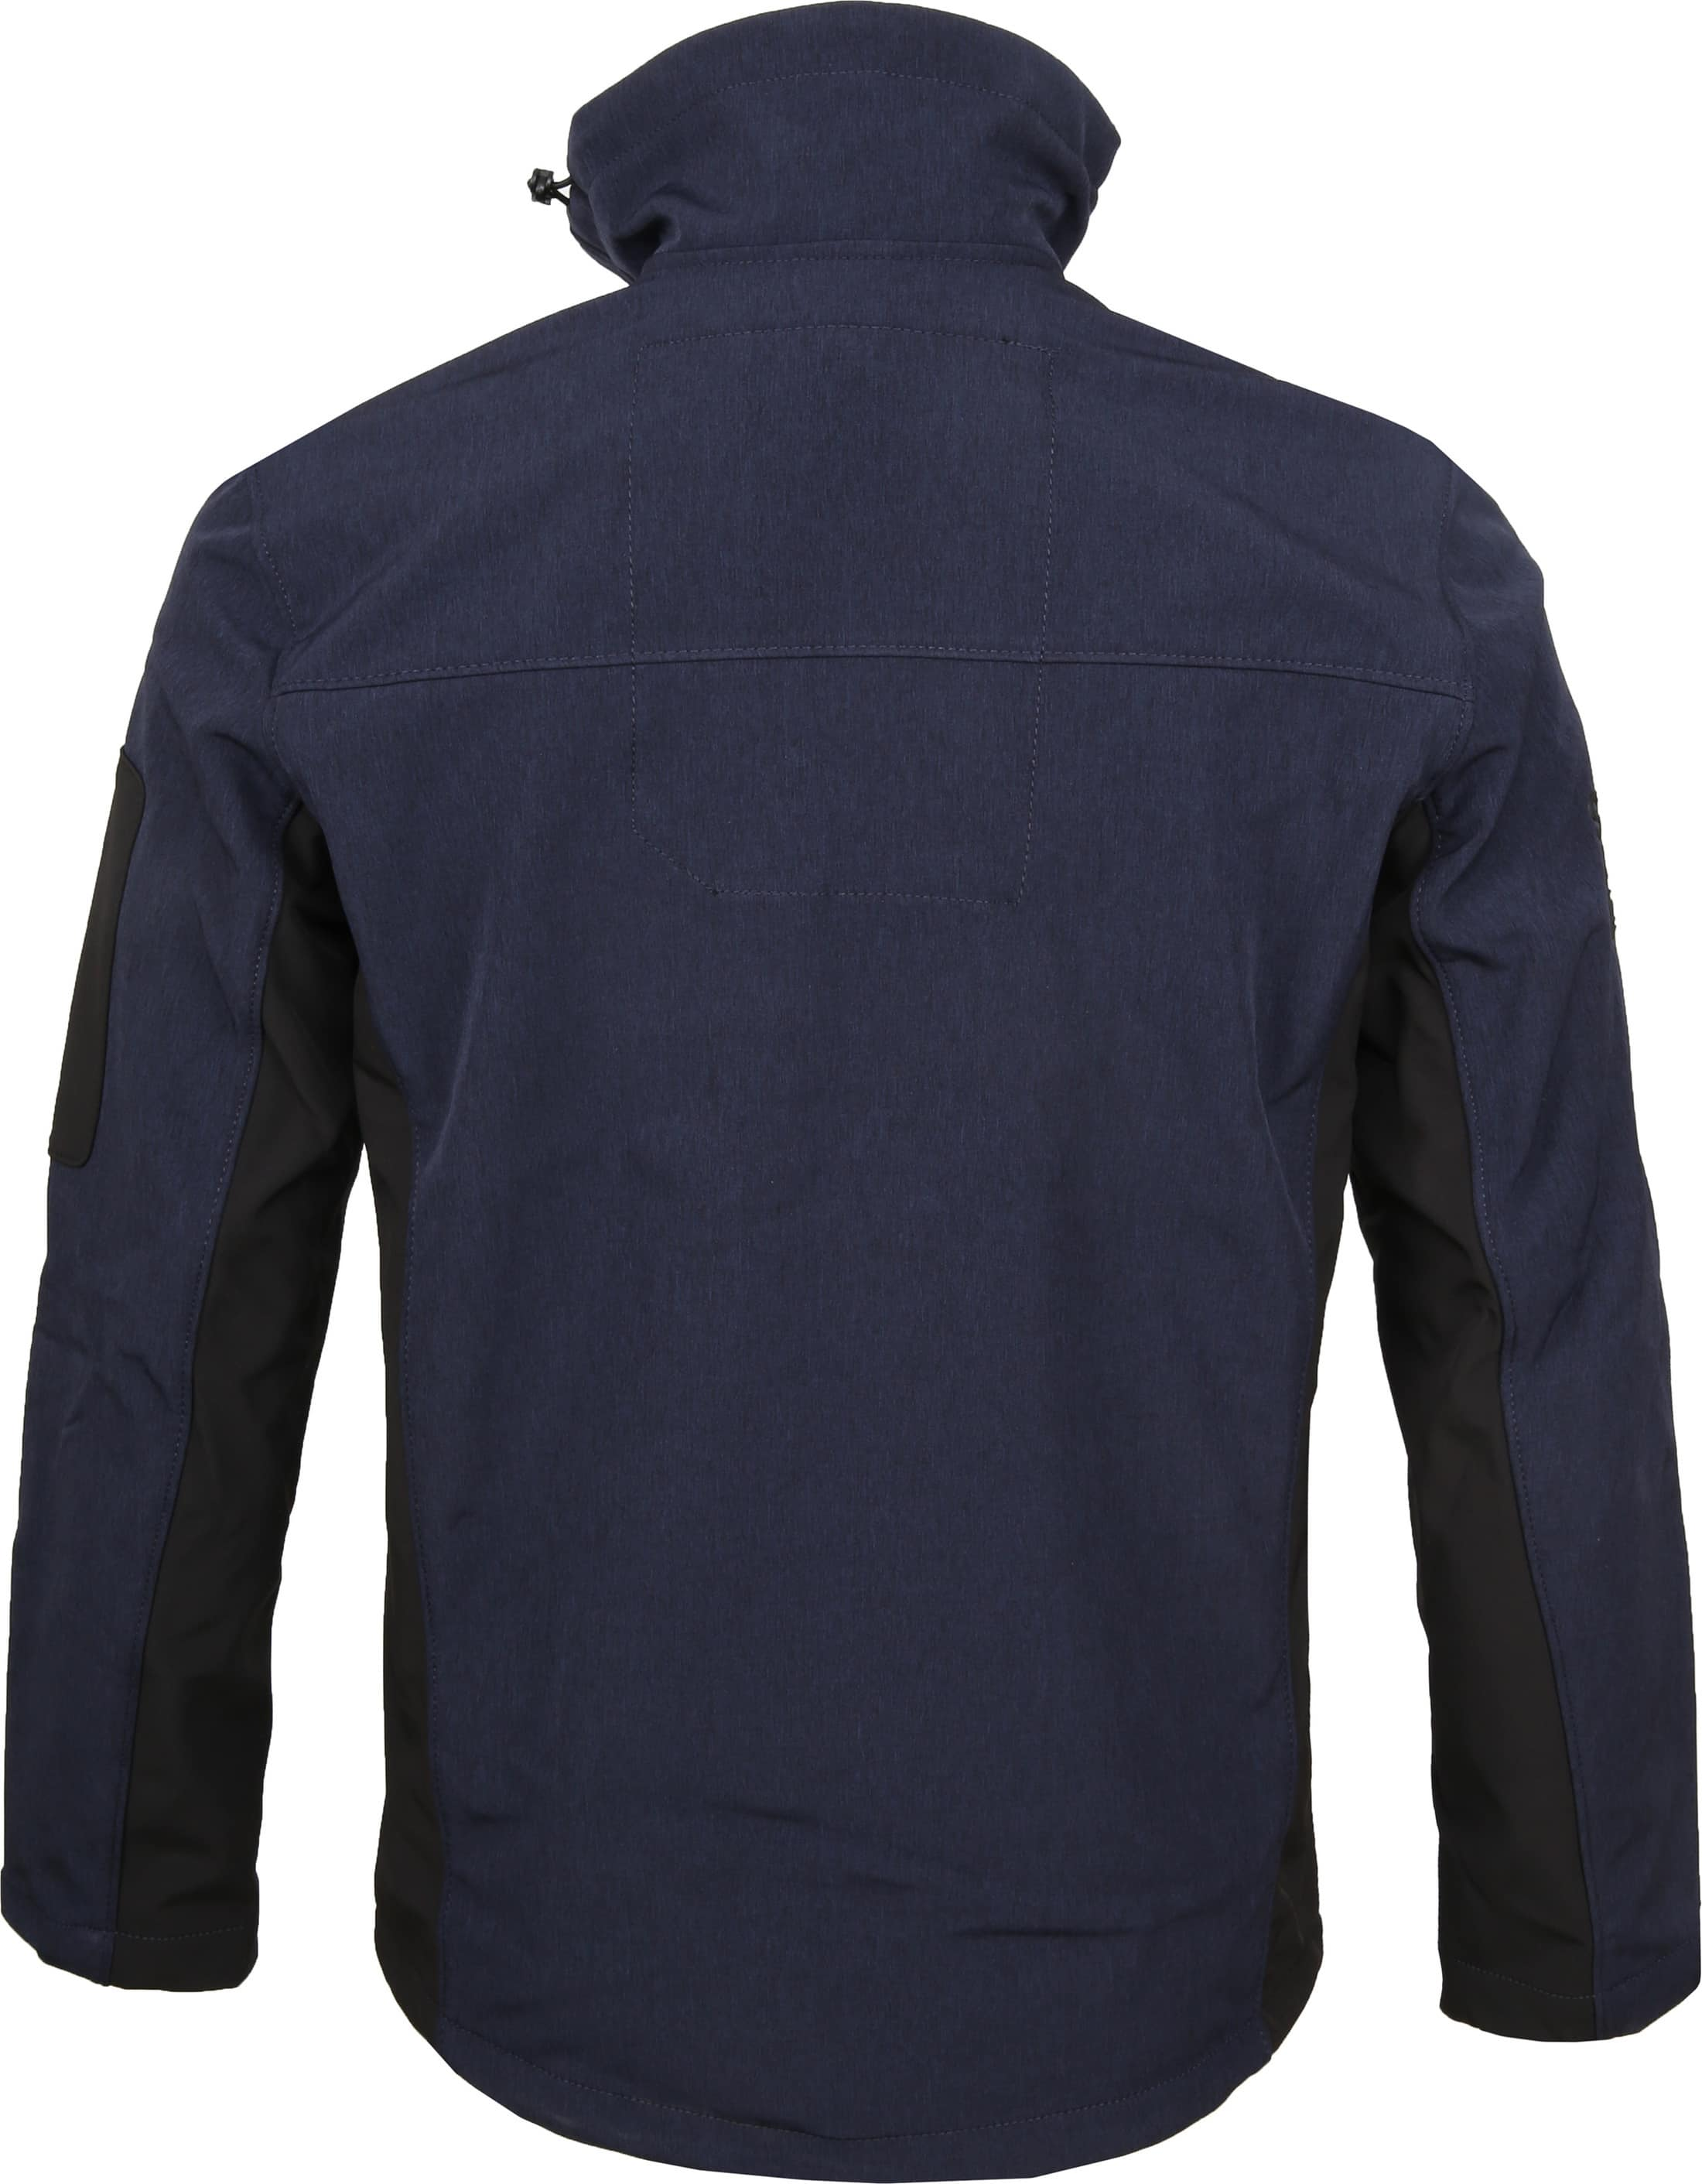 Superdry Paralex Windjack Navy foto 5